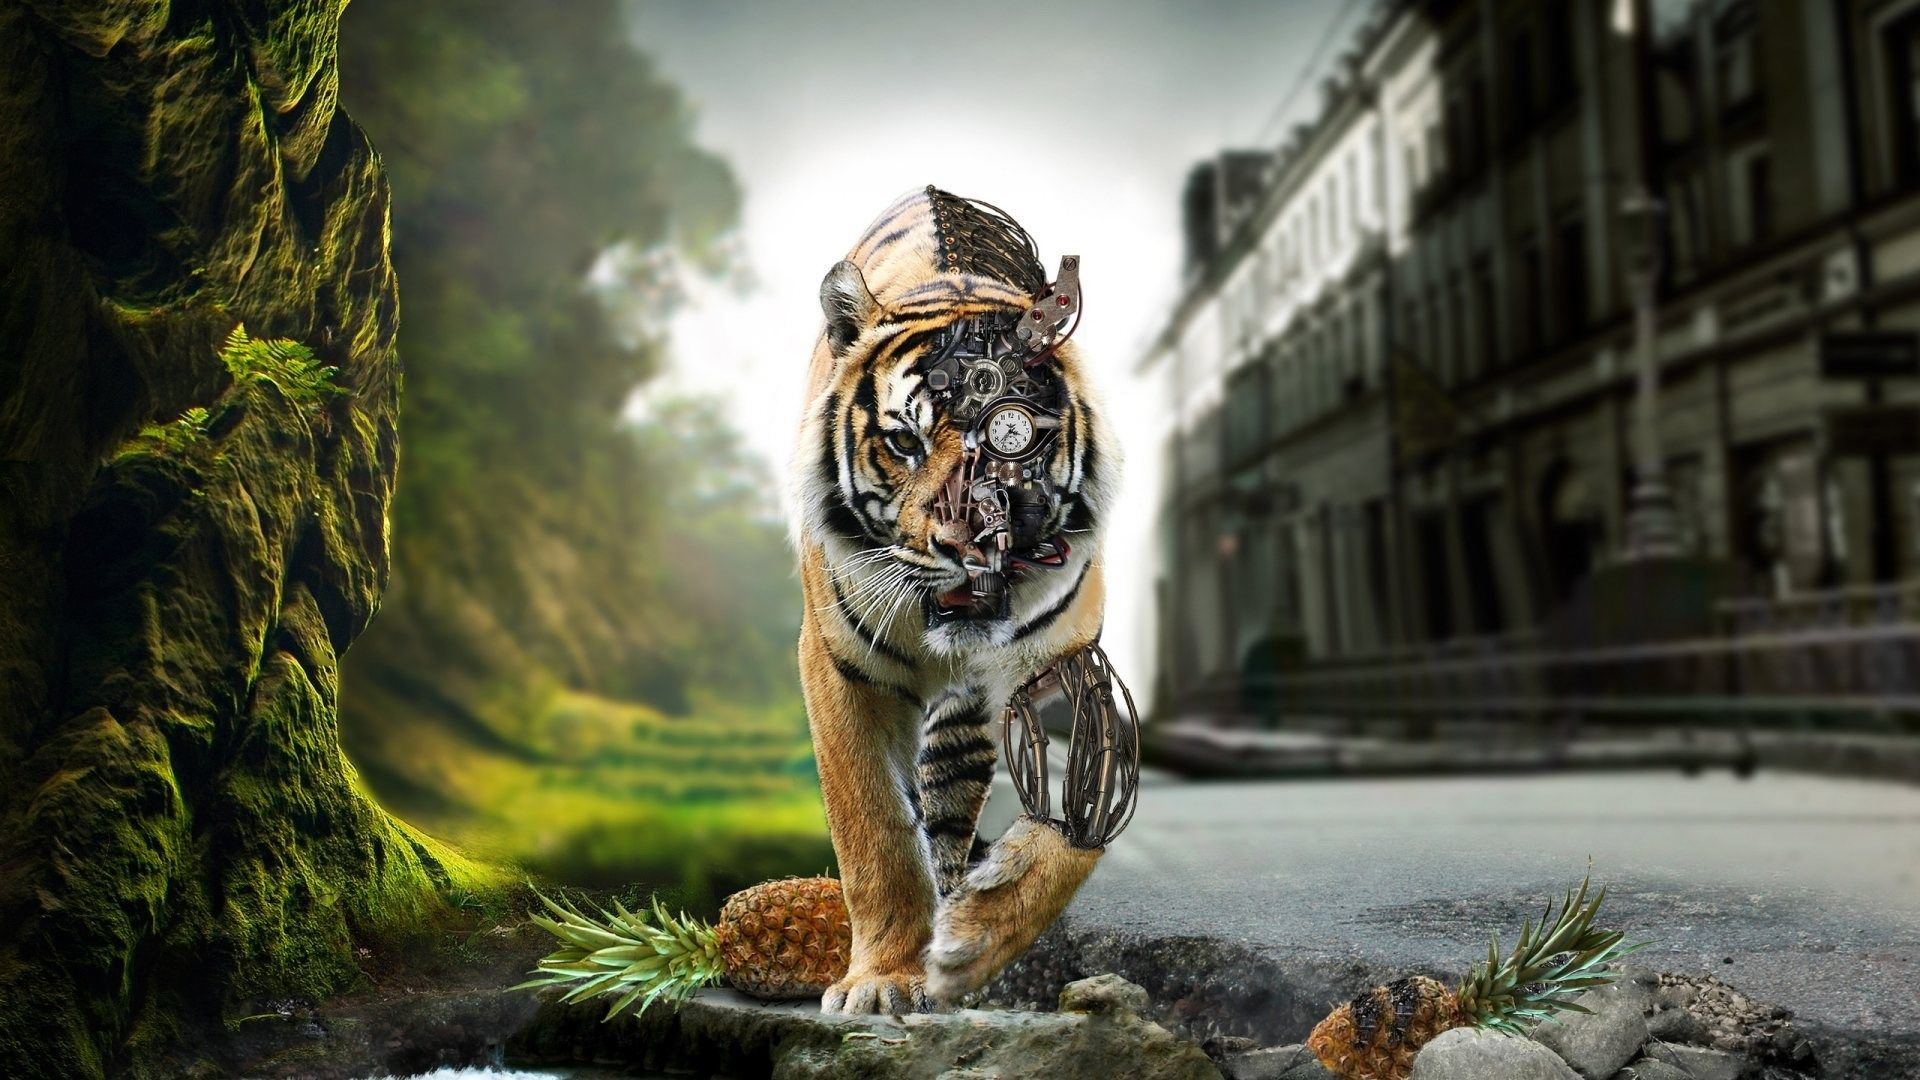 sick wallpapers hd images pictures Tiger wallpaper, Lion